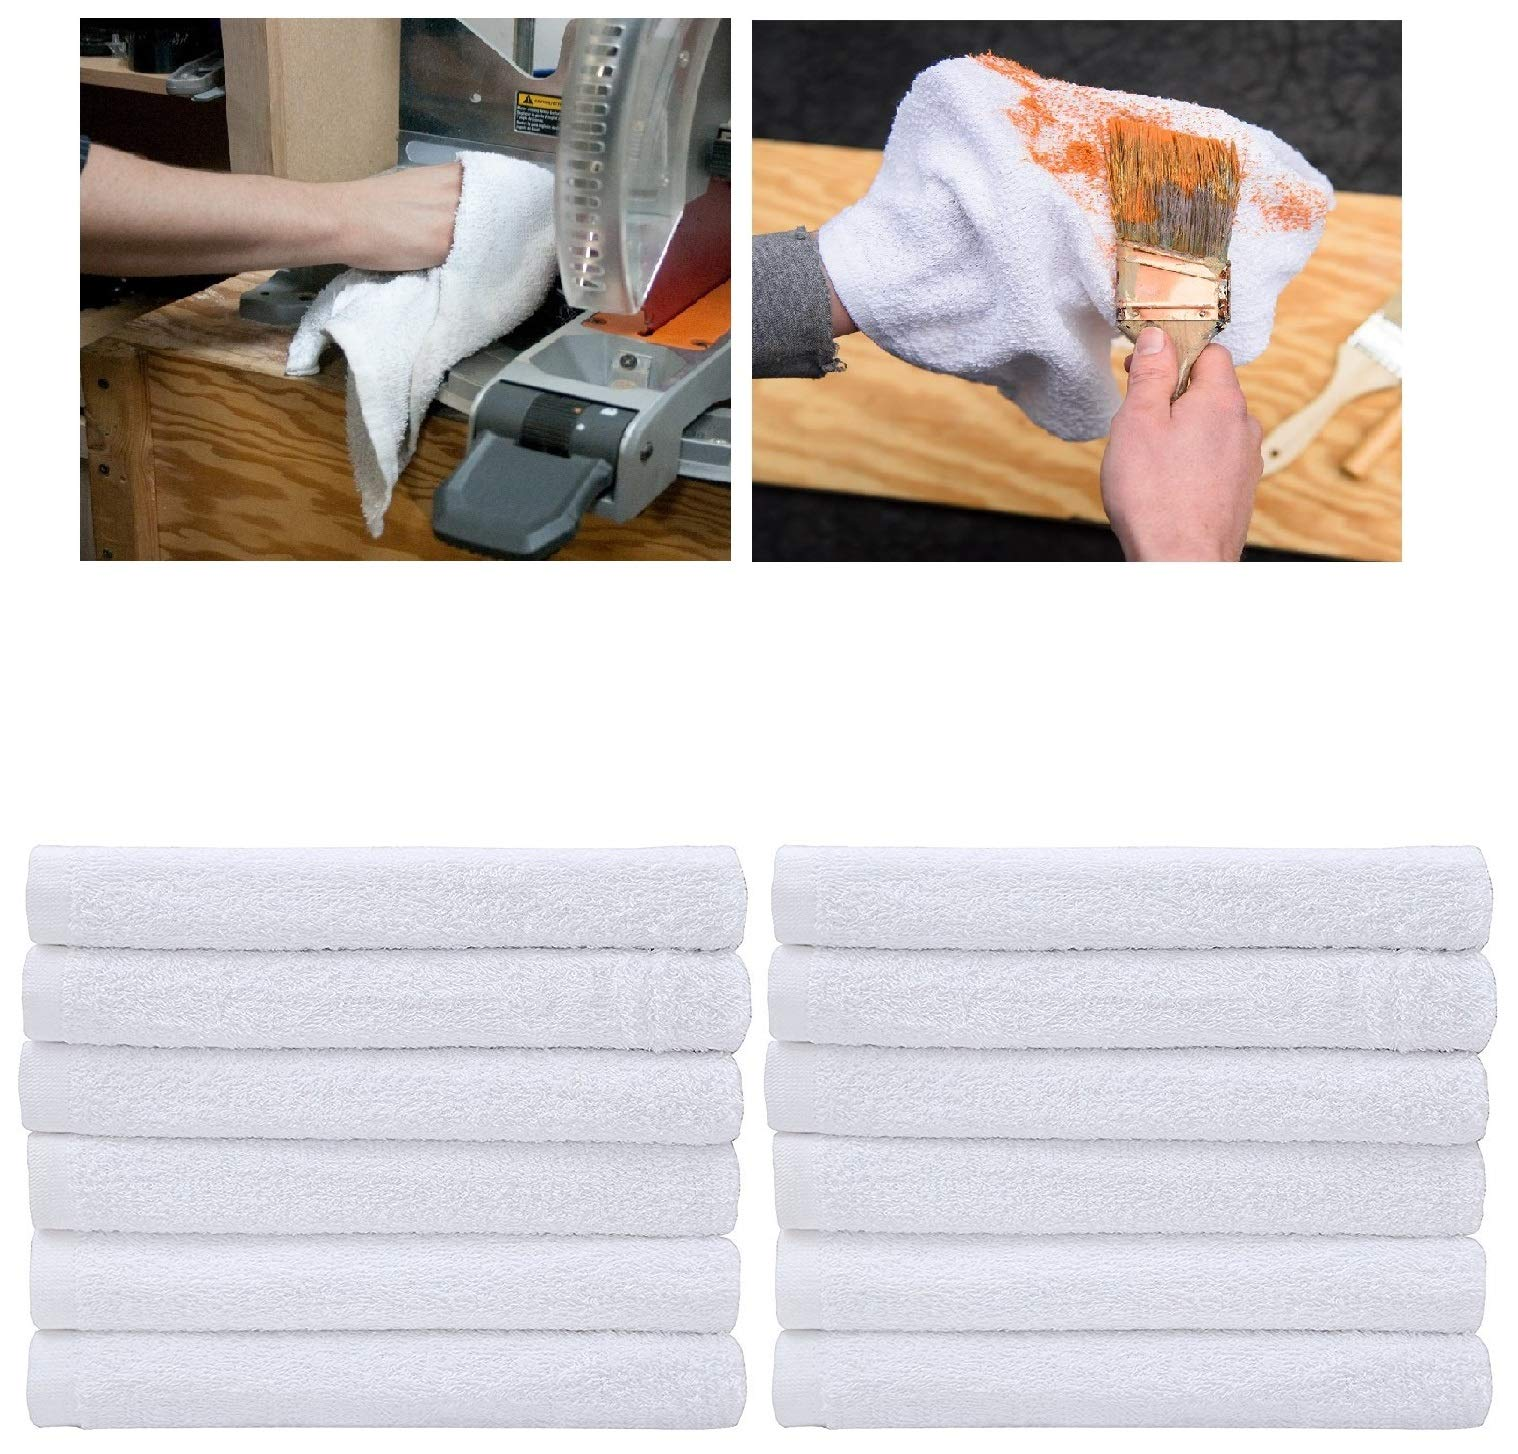 50 Terry Towels | 14'' X 17'' Shop Rags Towels | Bulk Rags for Multipurpose Cleaning Solutions - Home House Mops Bar Towels | Absorbent and Washable White Terry Cloth Wash Rags | 100% Soft Plush Cotton by LEANO